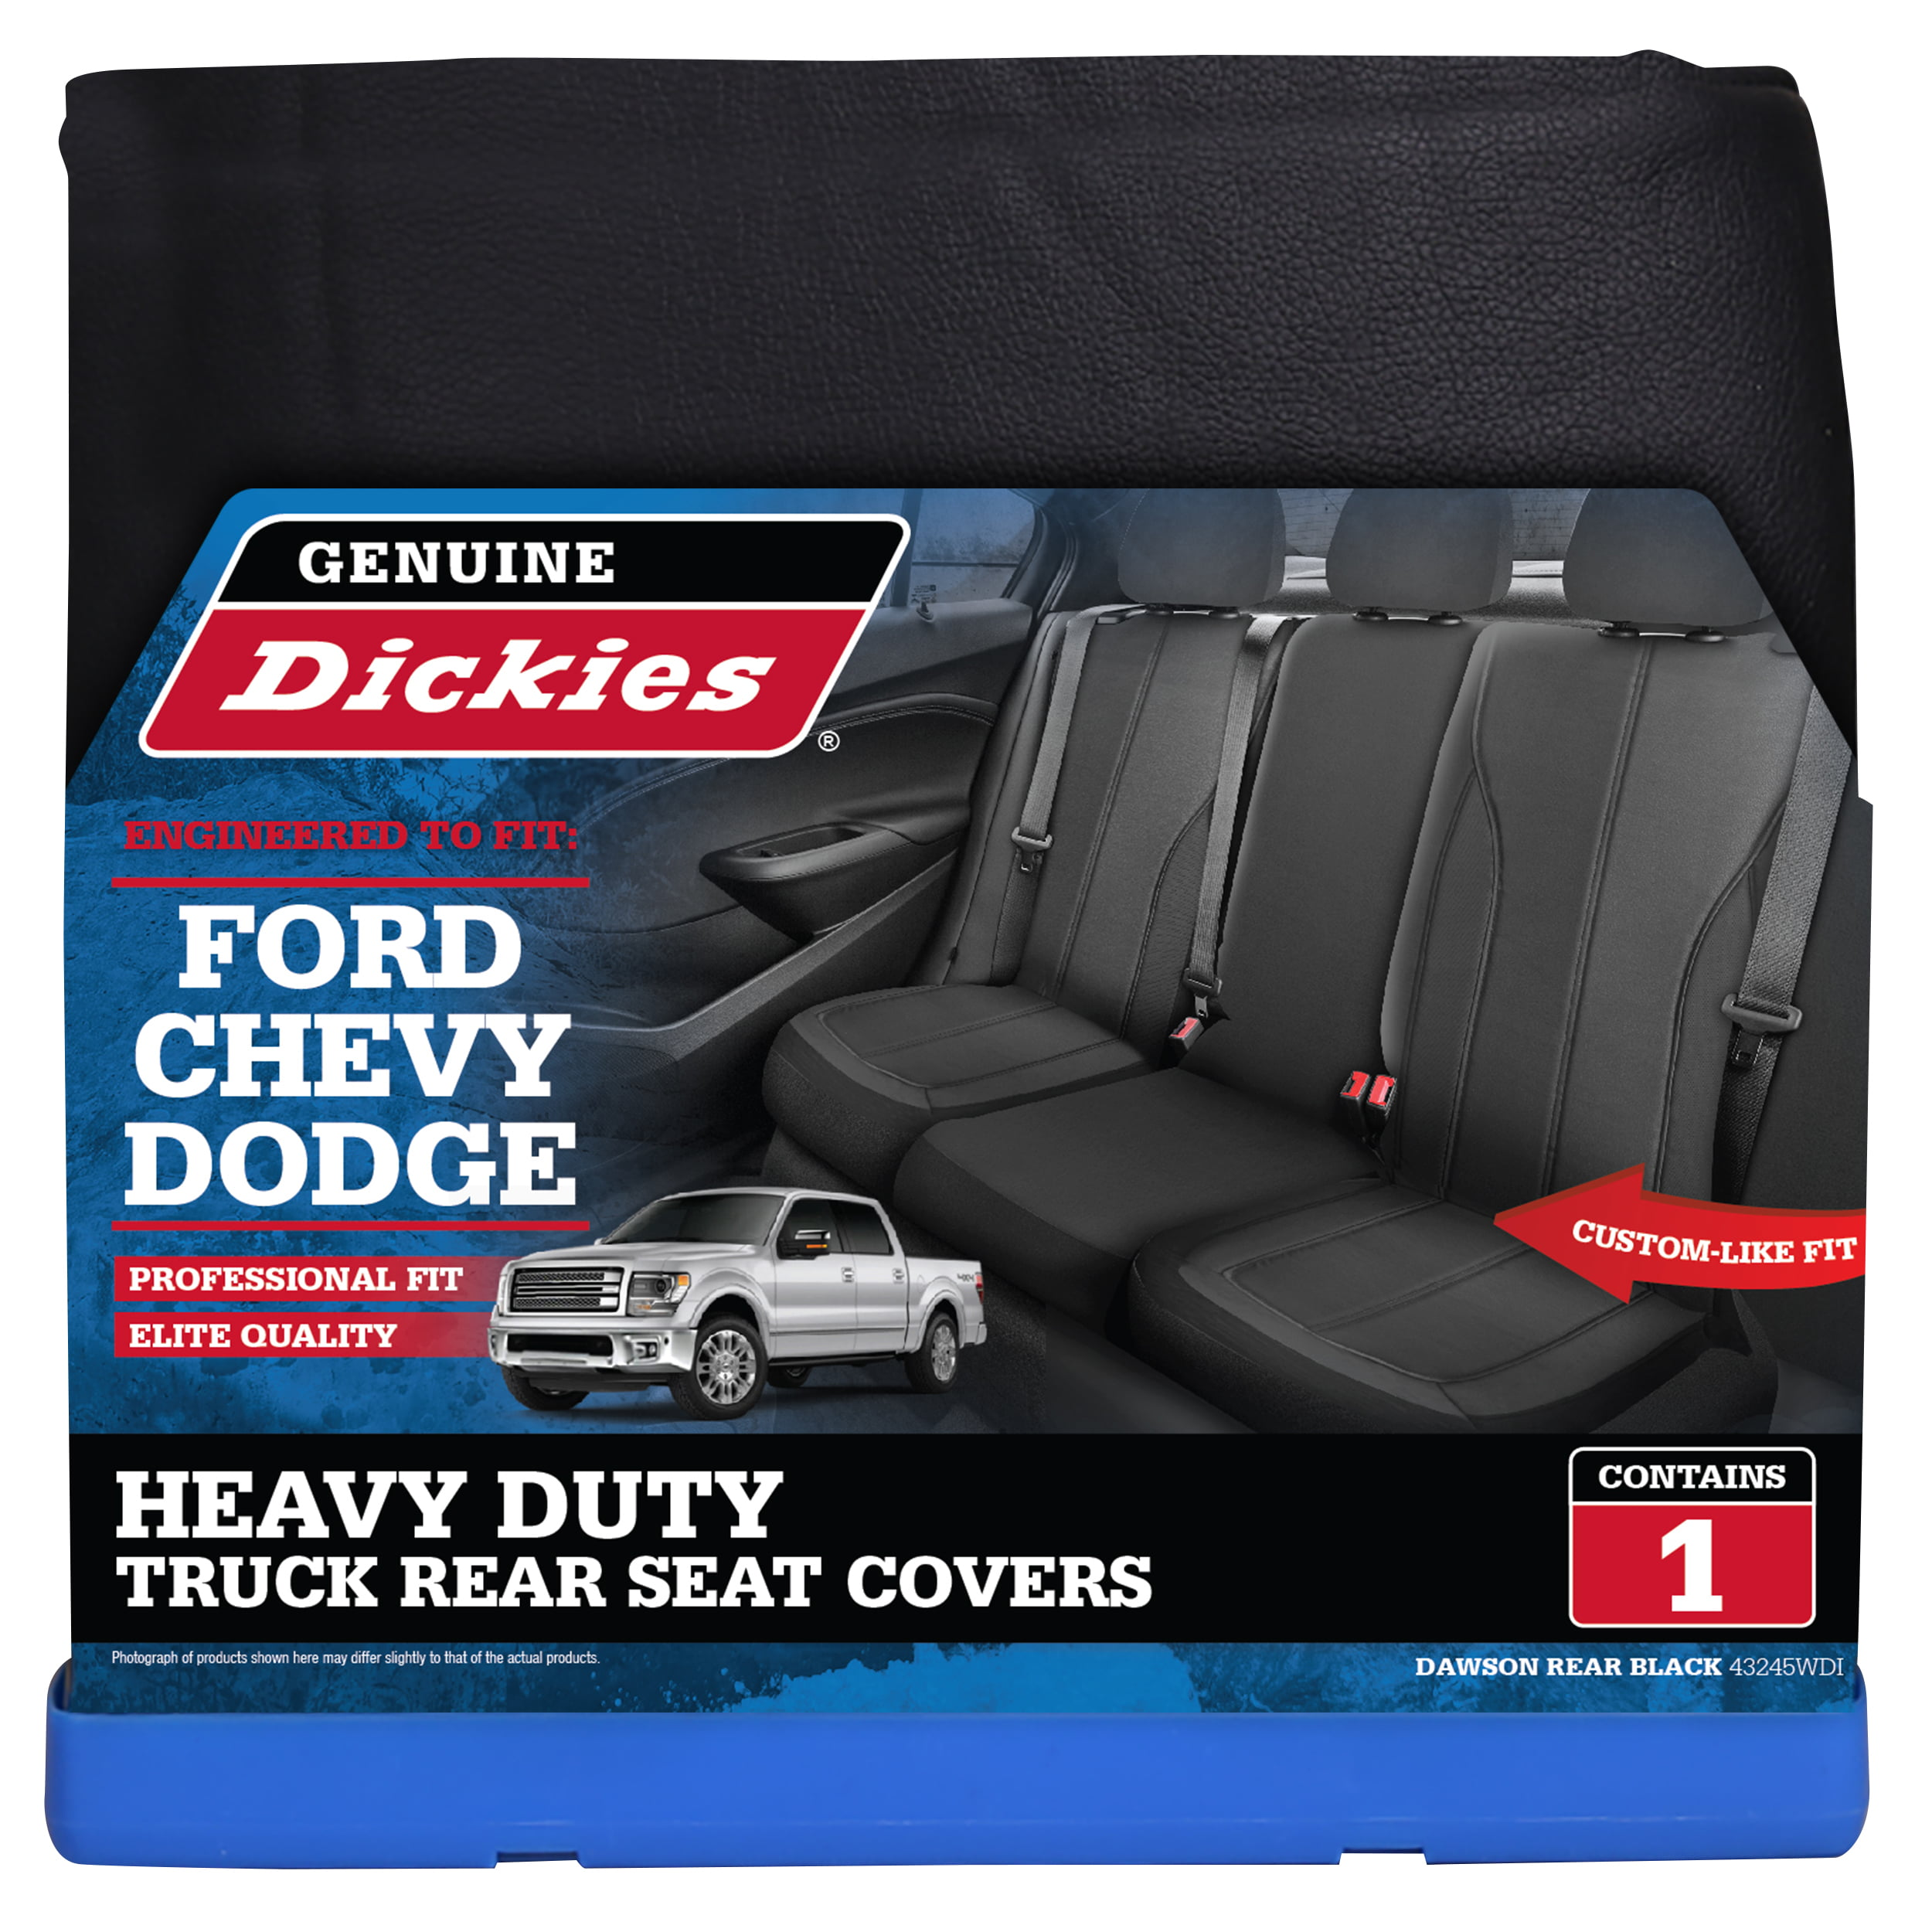 Genuine Dickies Rear Bench Truck Custom Fit Seat Cover Black Walmart Com Walmart Com